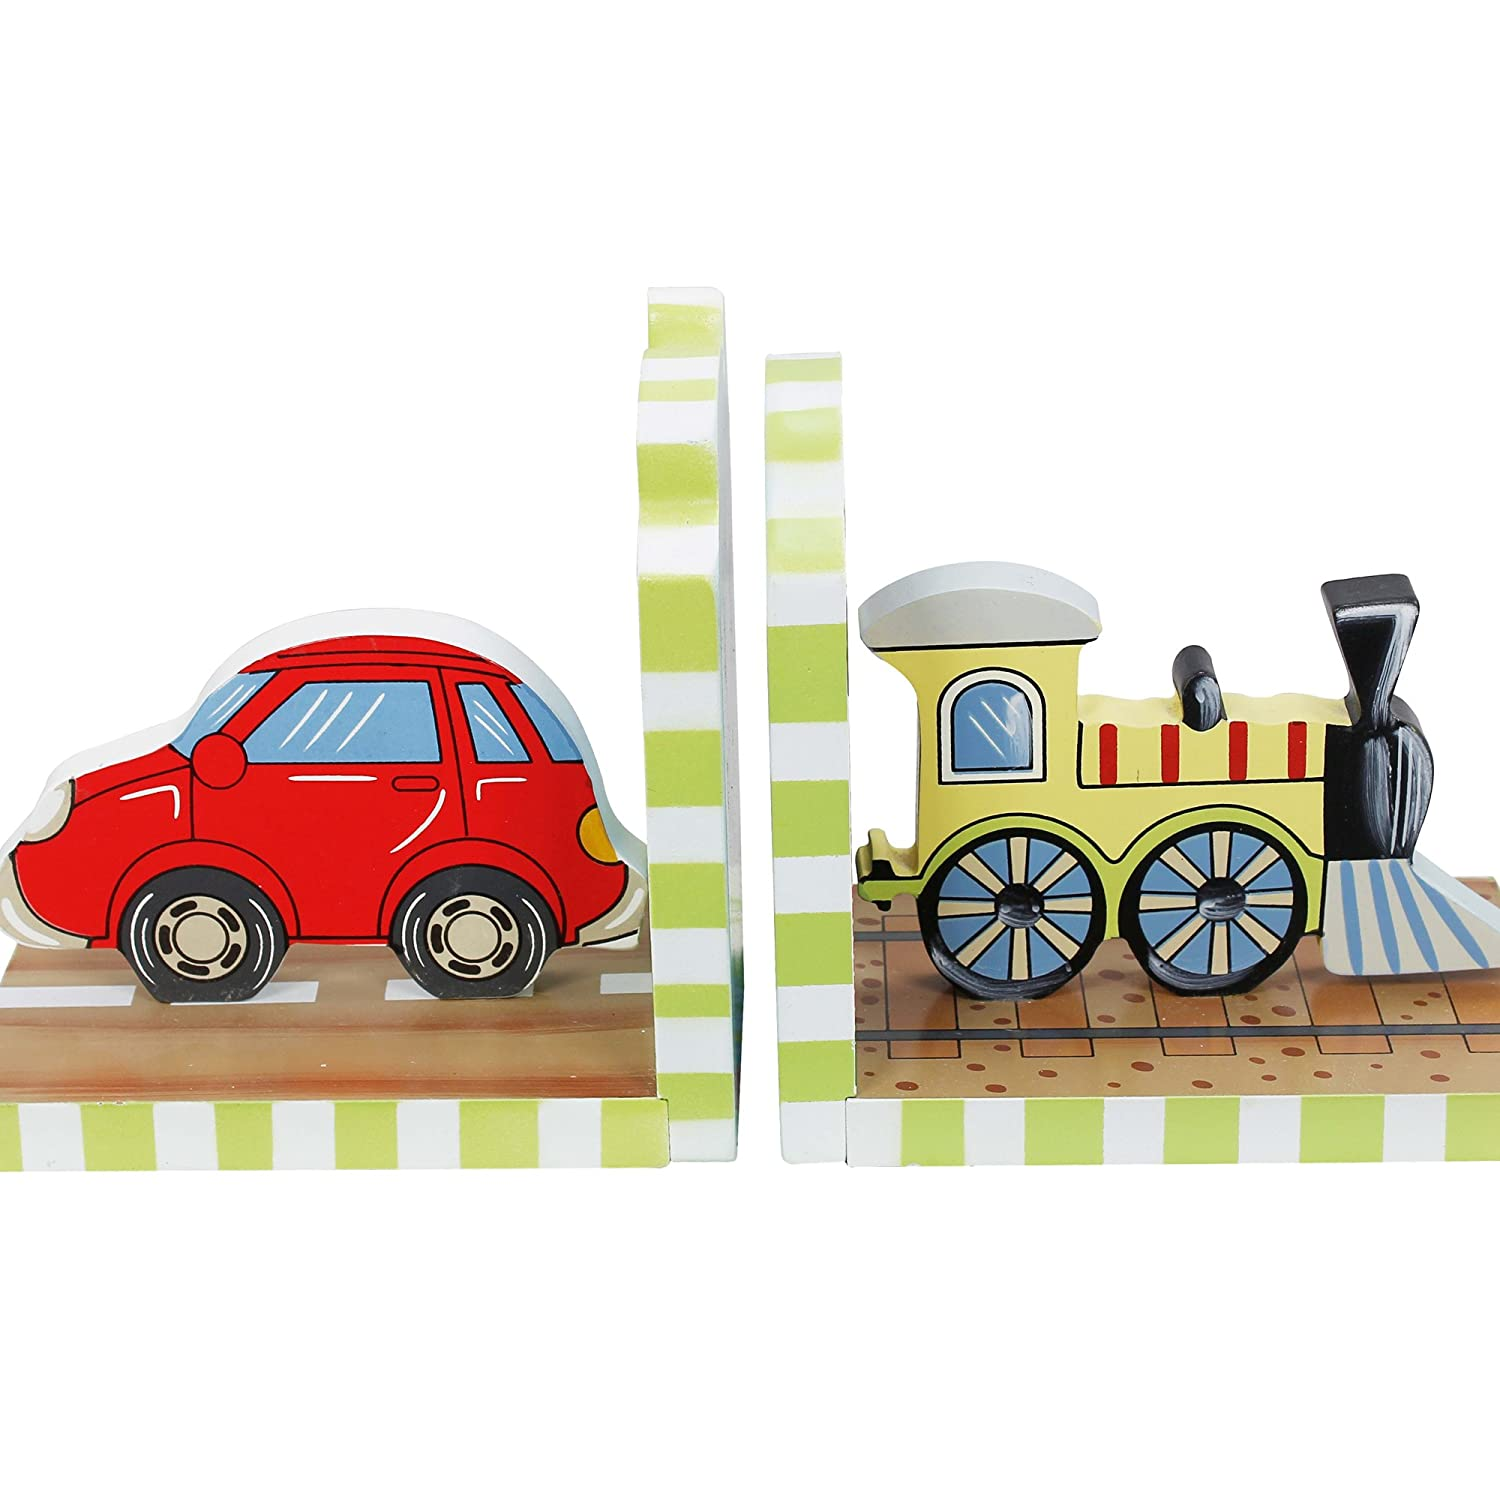 Fantasy Fields - Transportation Thematic Set of 2 Wooden Bookends for Kids | Imagination Inspiring Hand Crafted & Hand Painted Details   Non-Toxic, Lead Free Water-based Paint